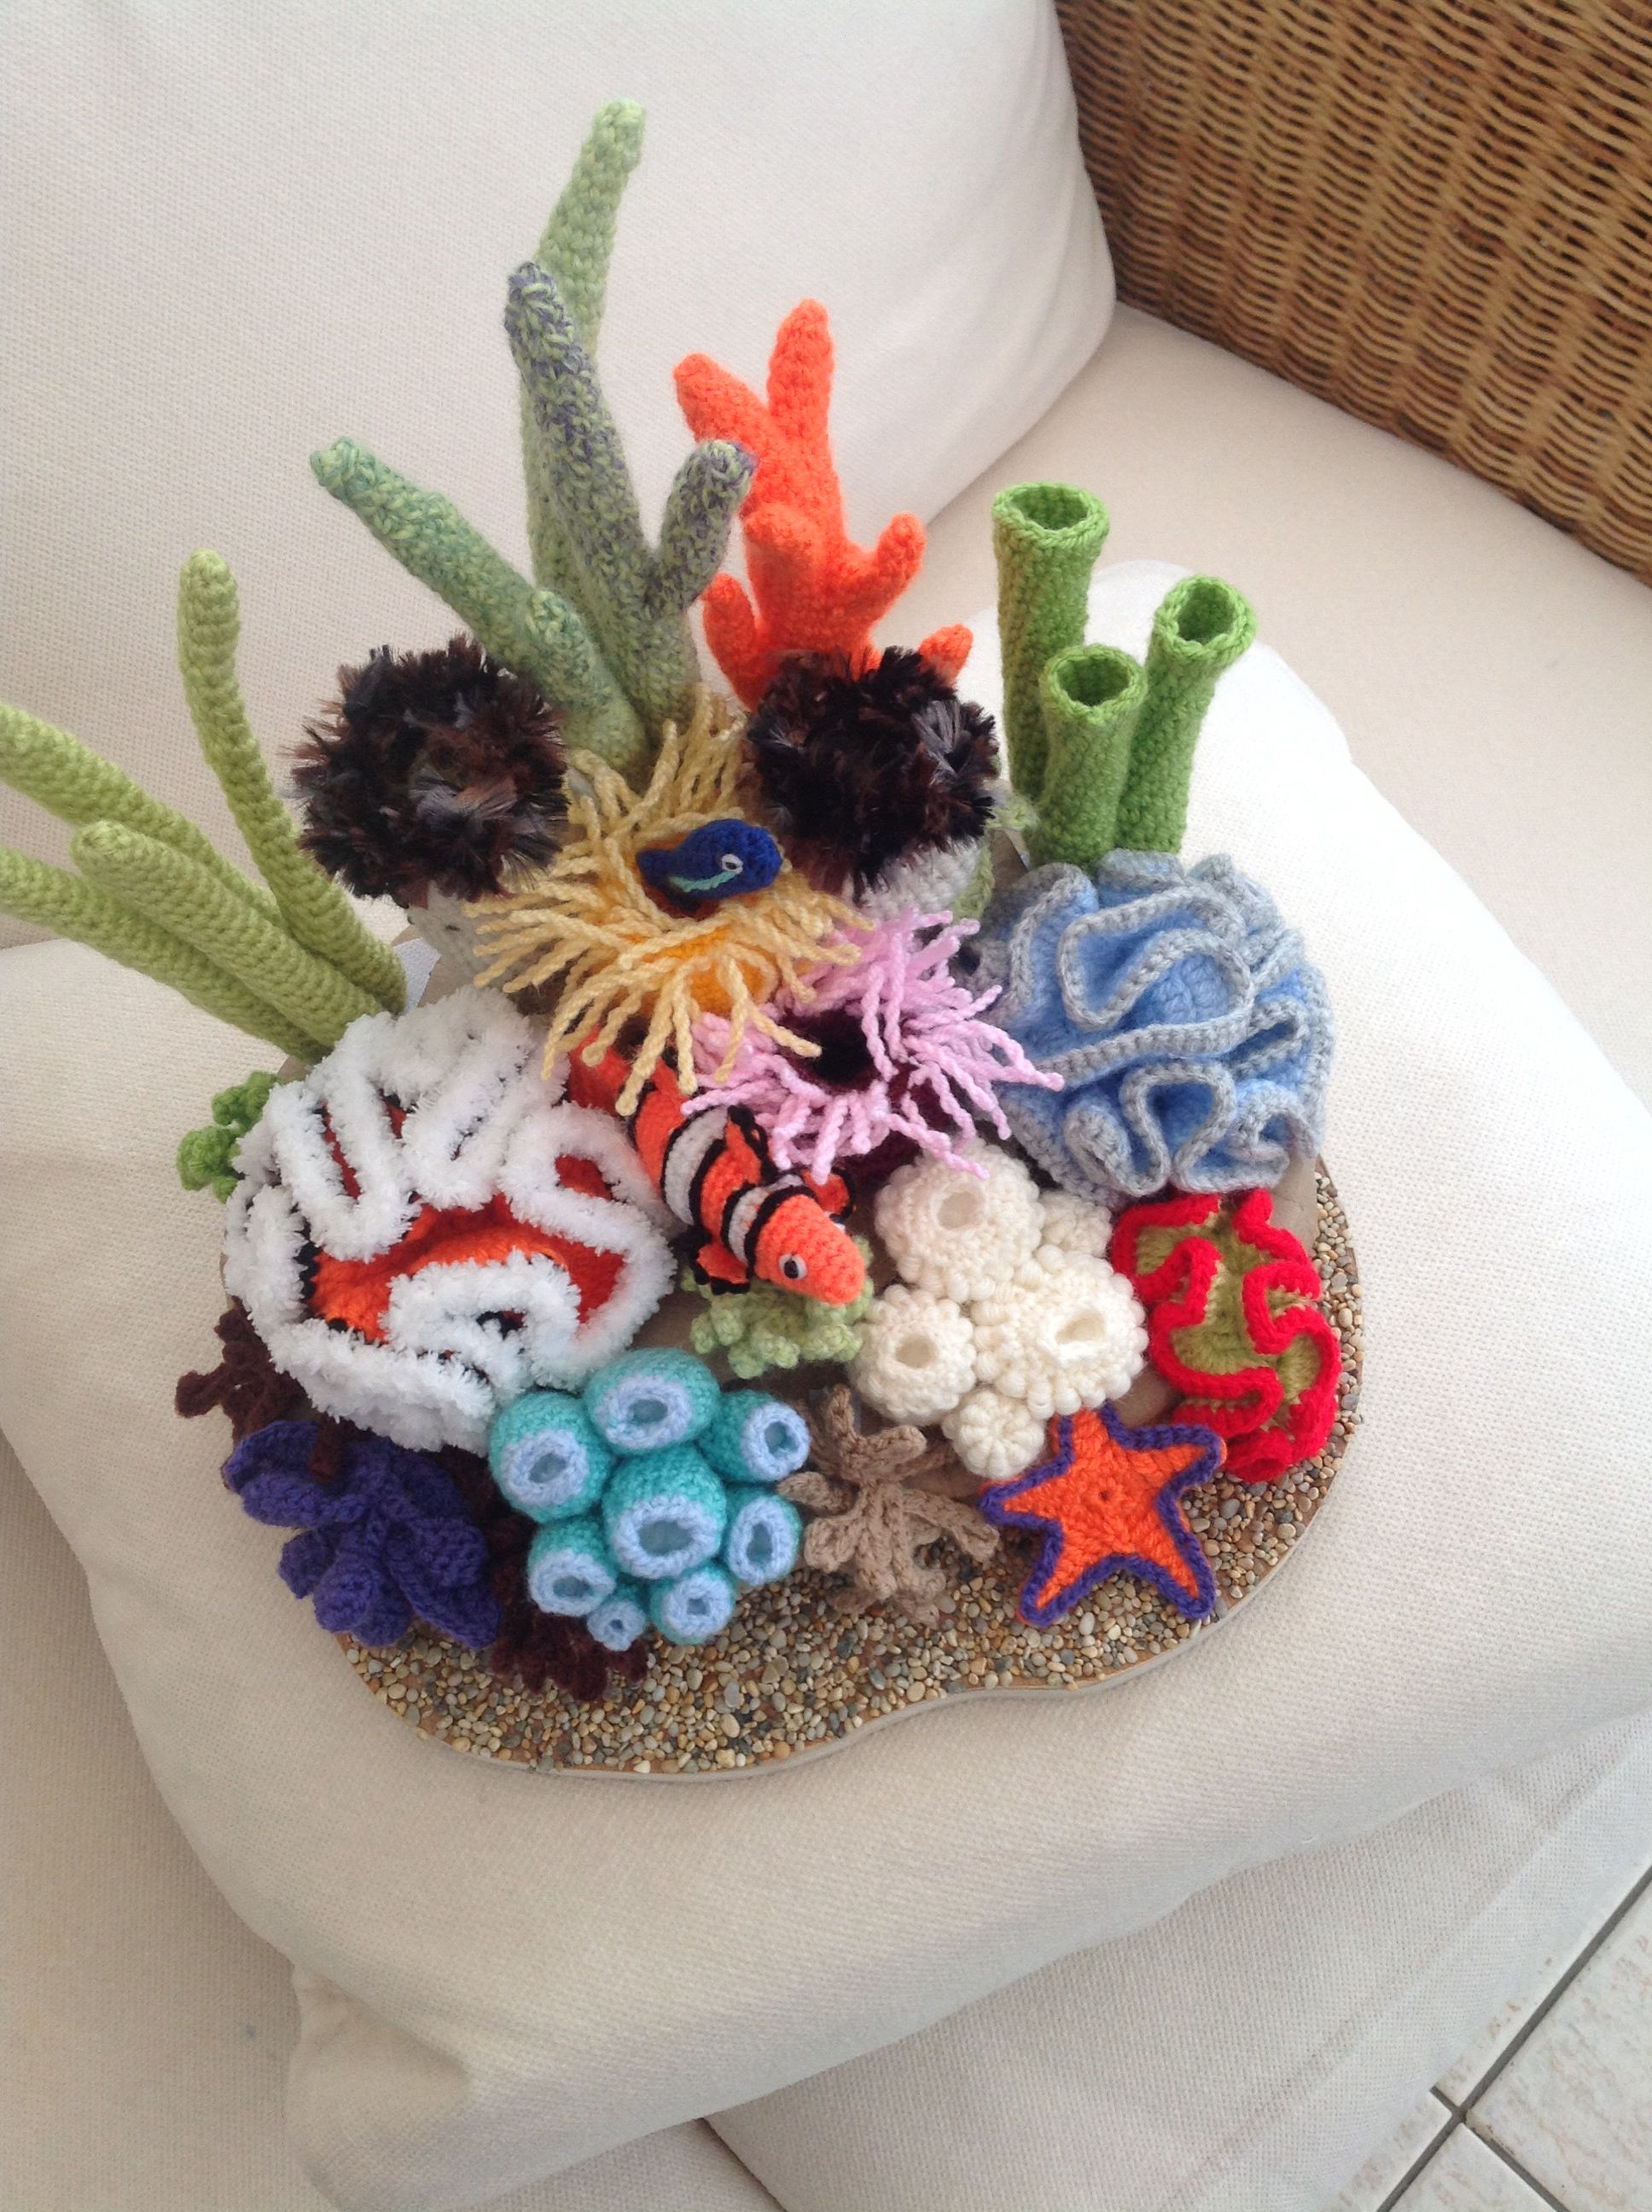 Crochet coral reef for school project | Häkel-Landschaften ...